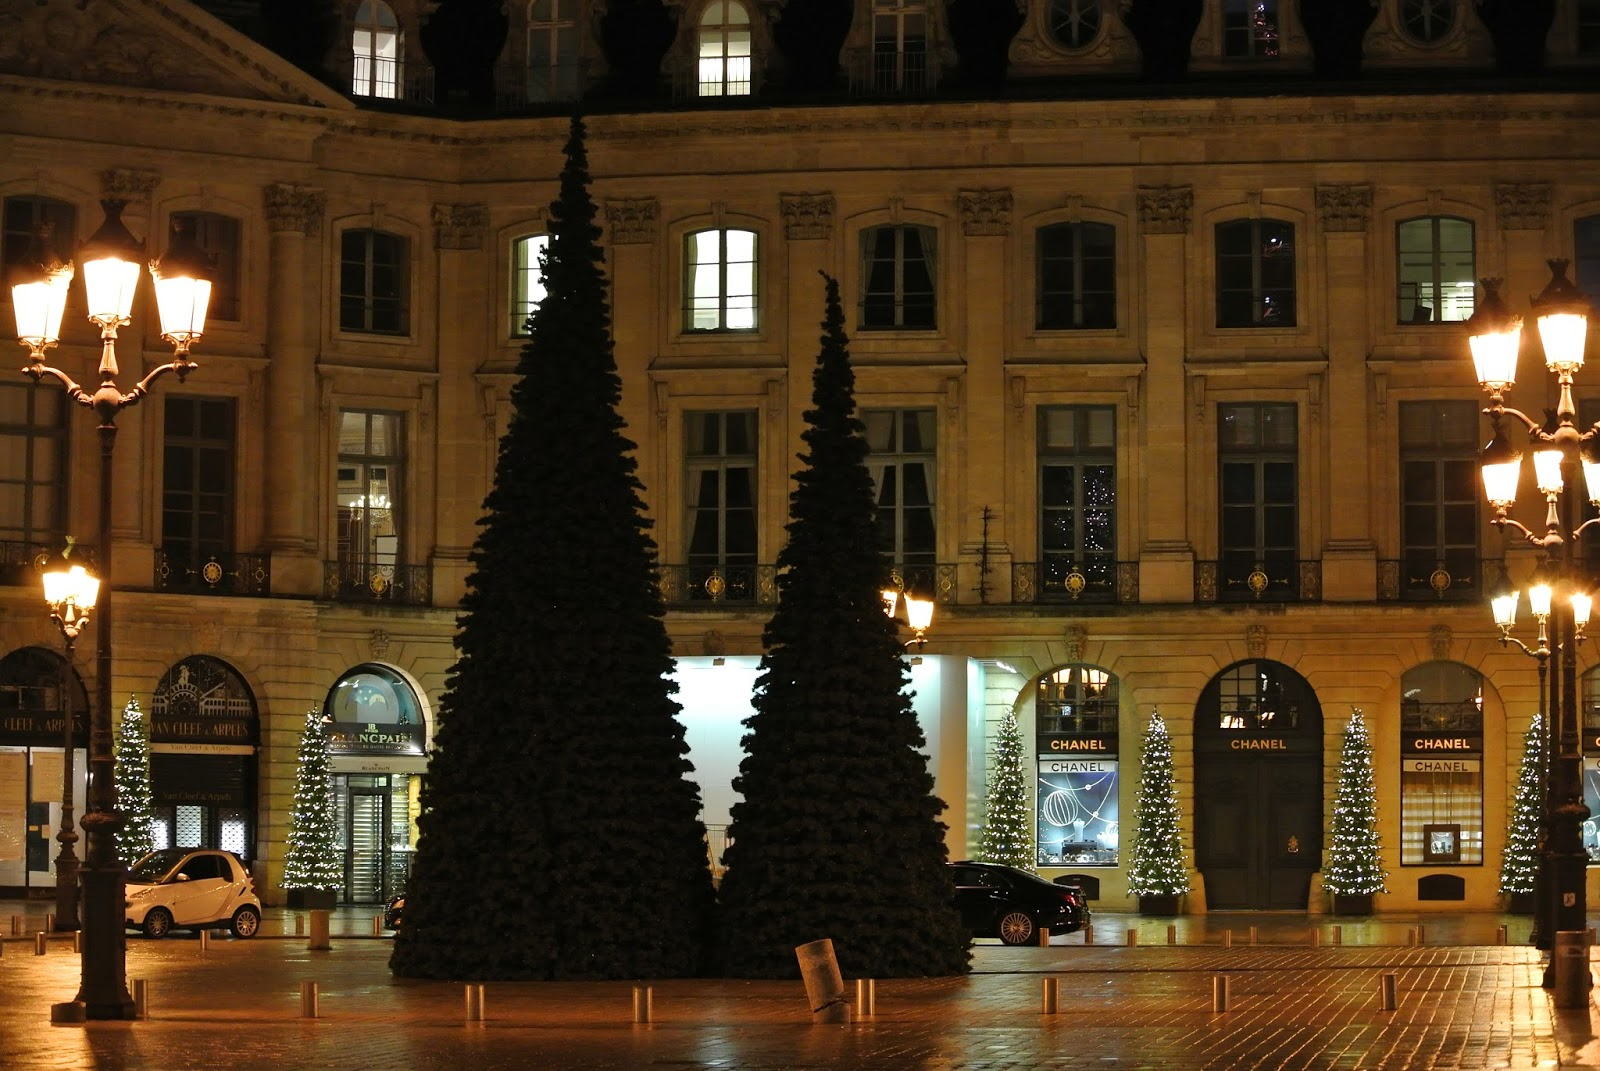 Le blog de gabrielle aznar les illuminations no l paris 2014 - Illumination paris 2014 ...